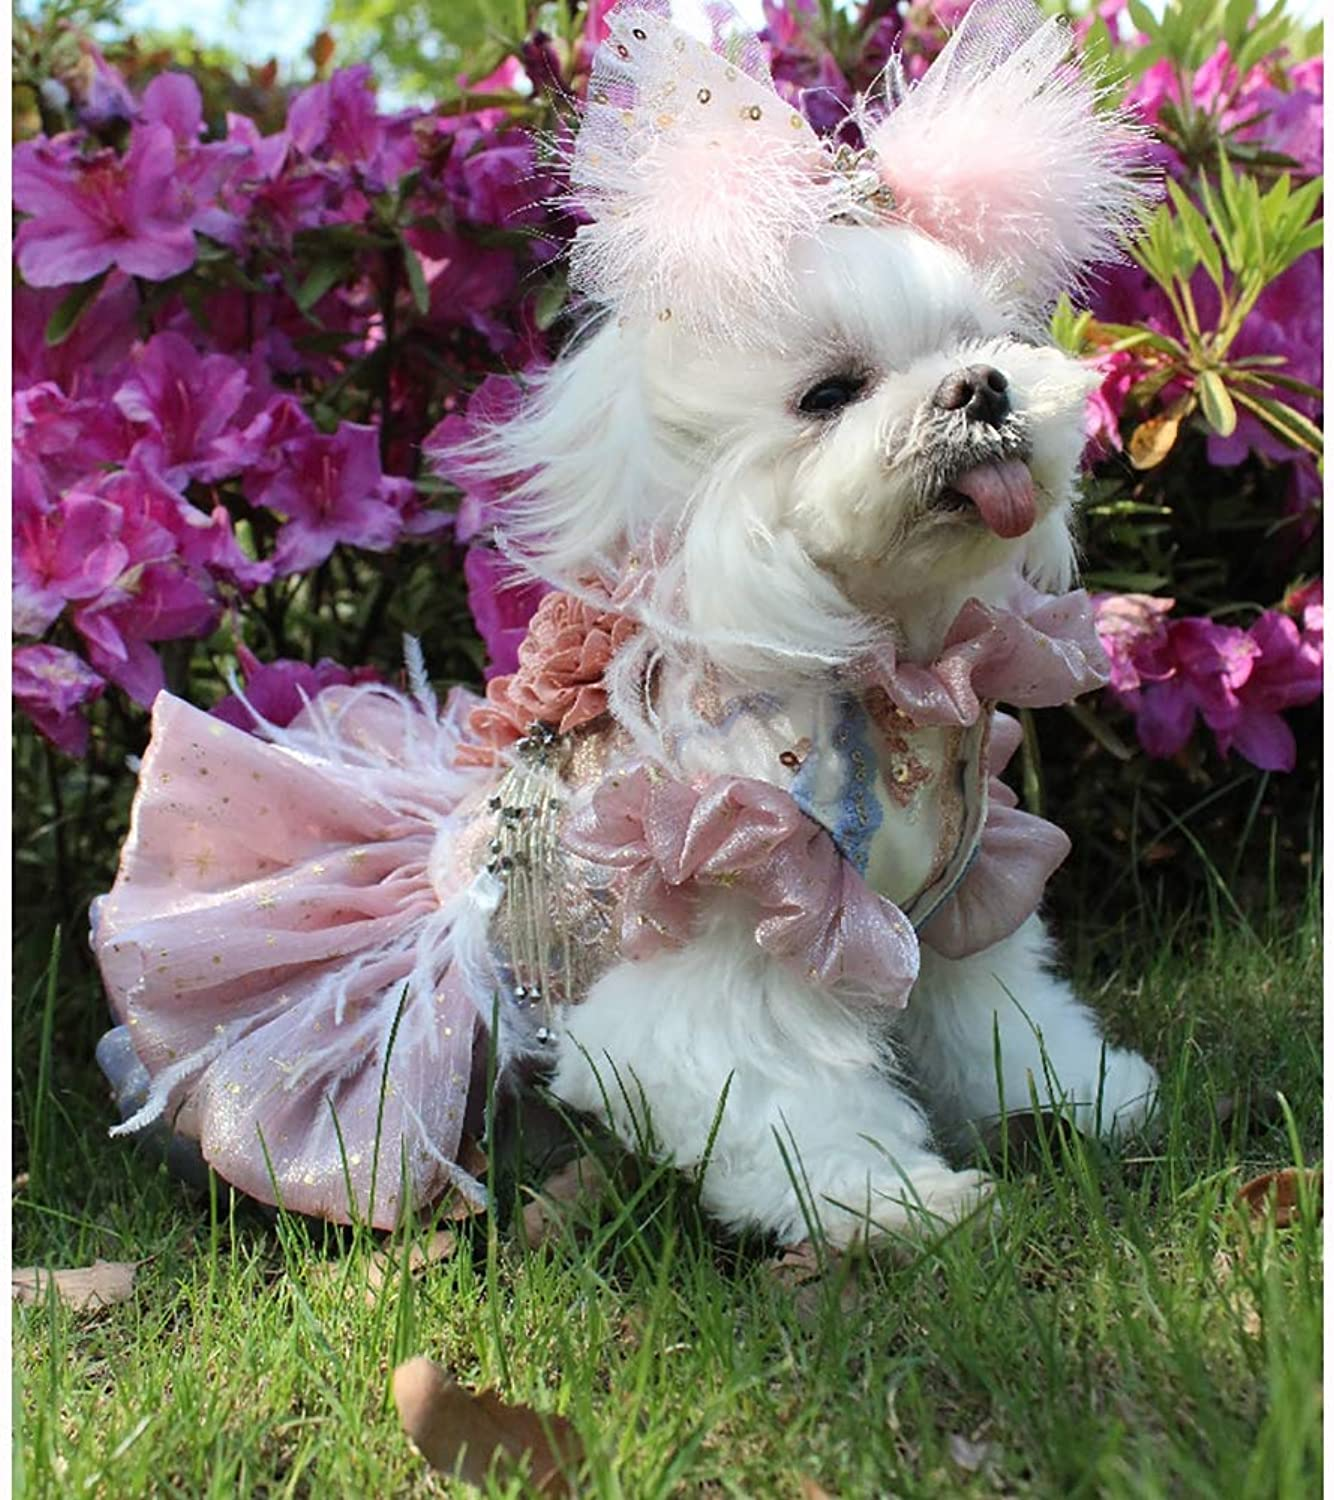 Dog Evening Dress,Puppy Dog Princess Dresses MultiLayered Fluffy Skirt Suitable for Wedding Photography Holiday Party Birthday Party Evening,M